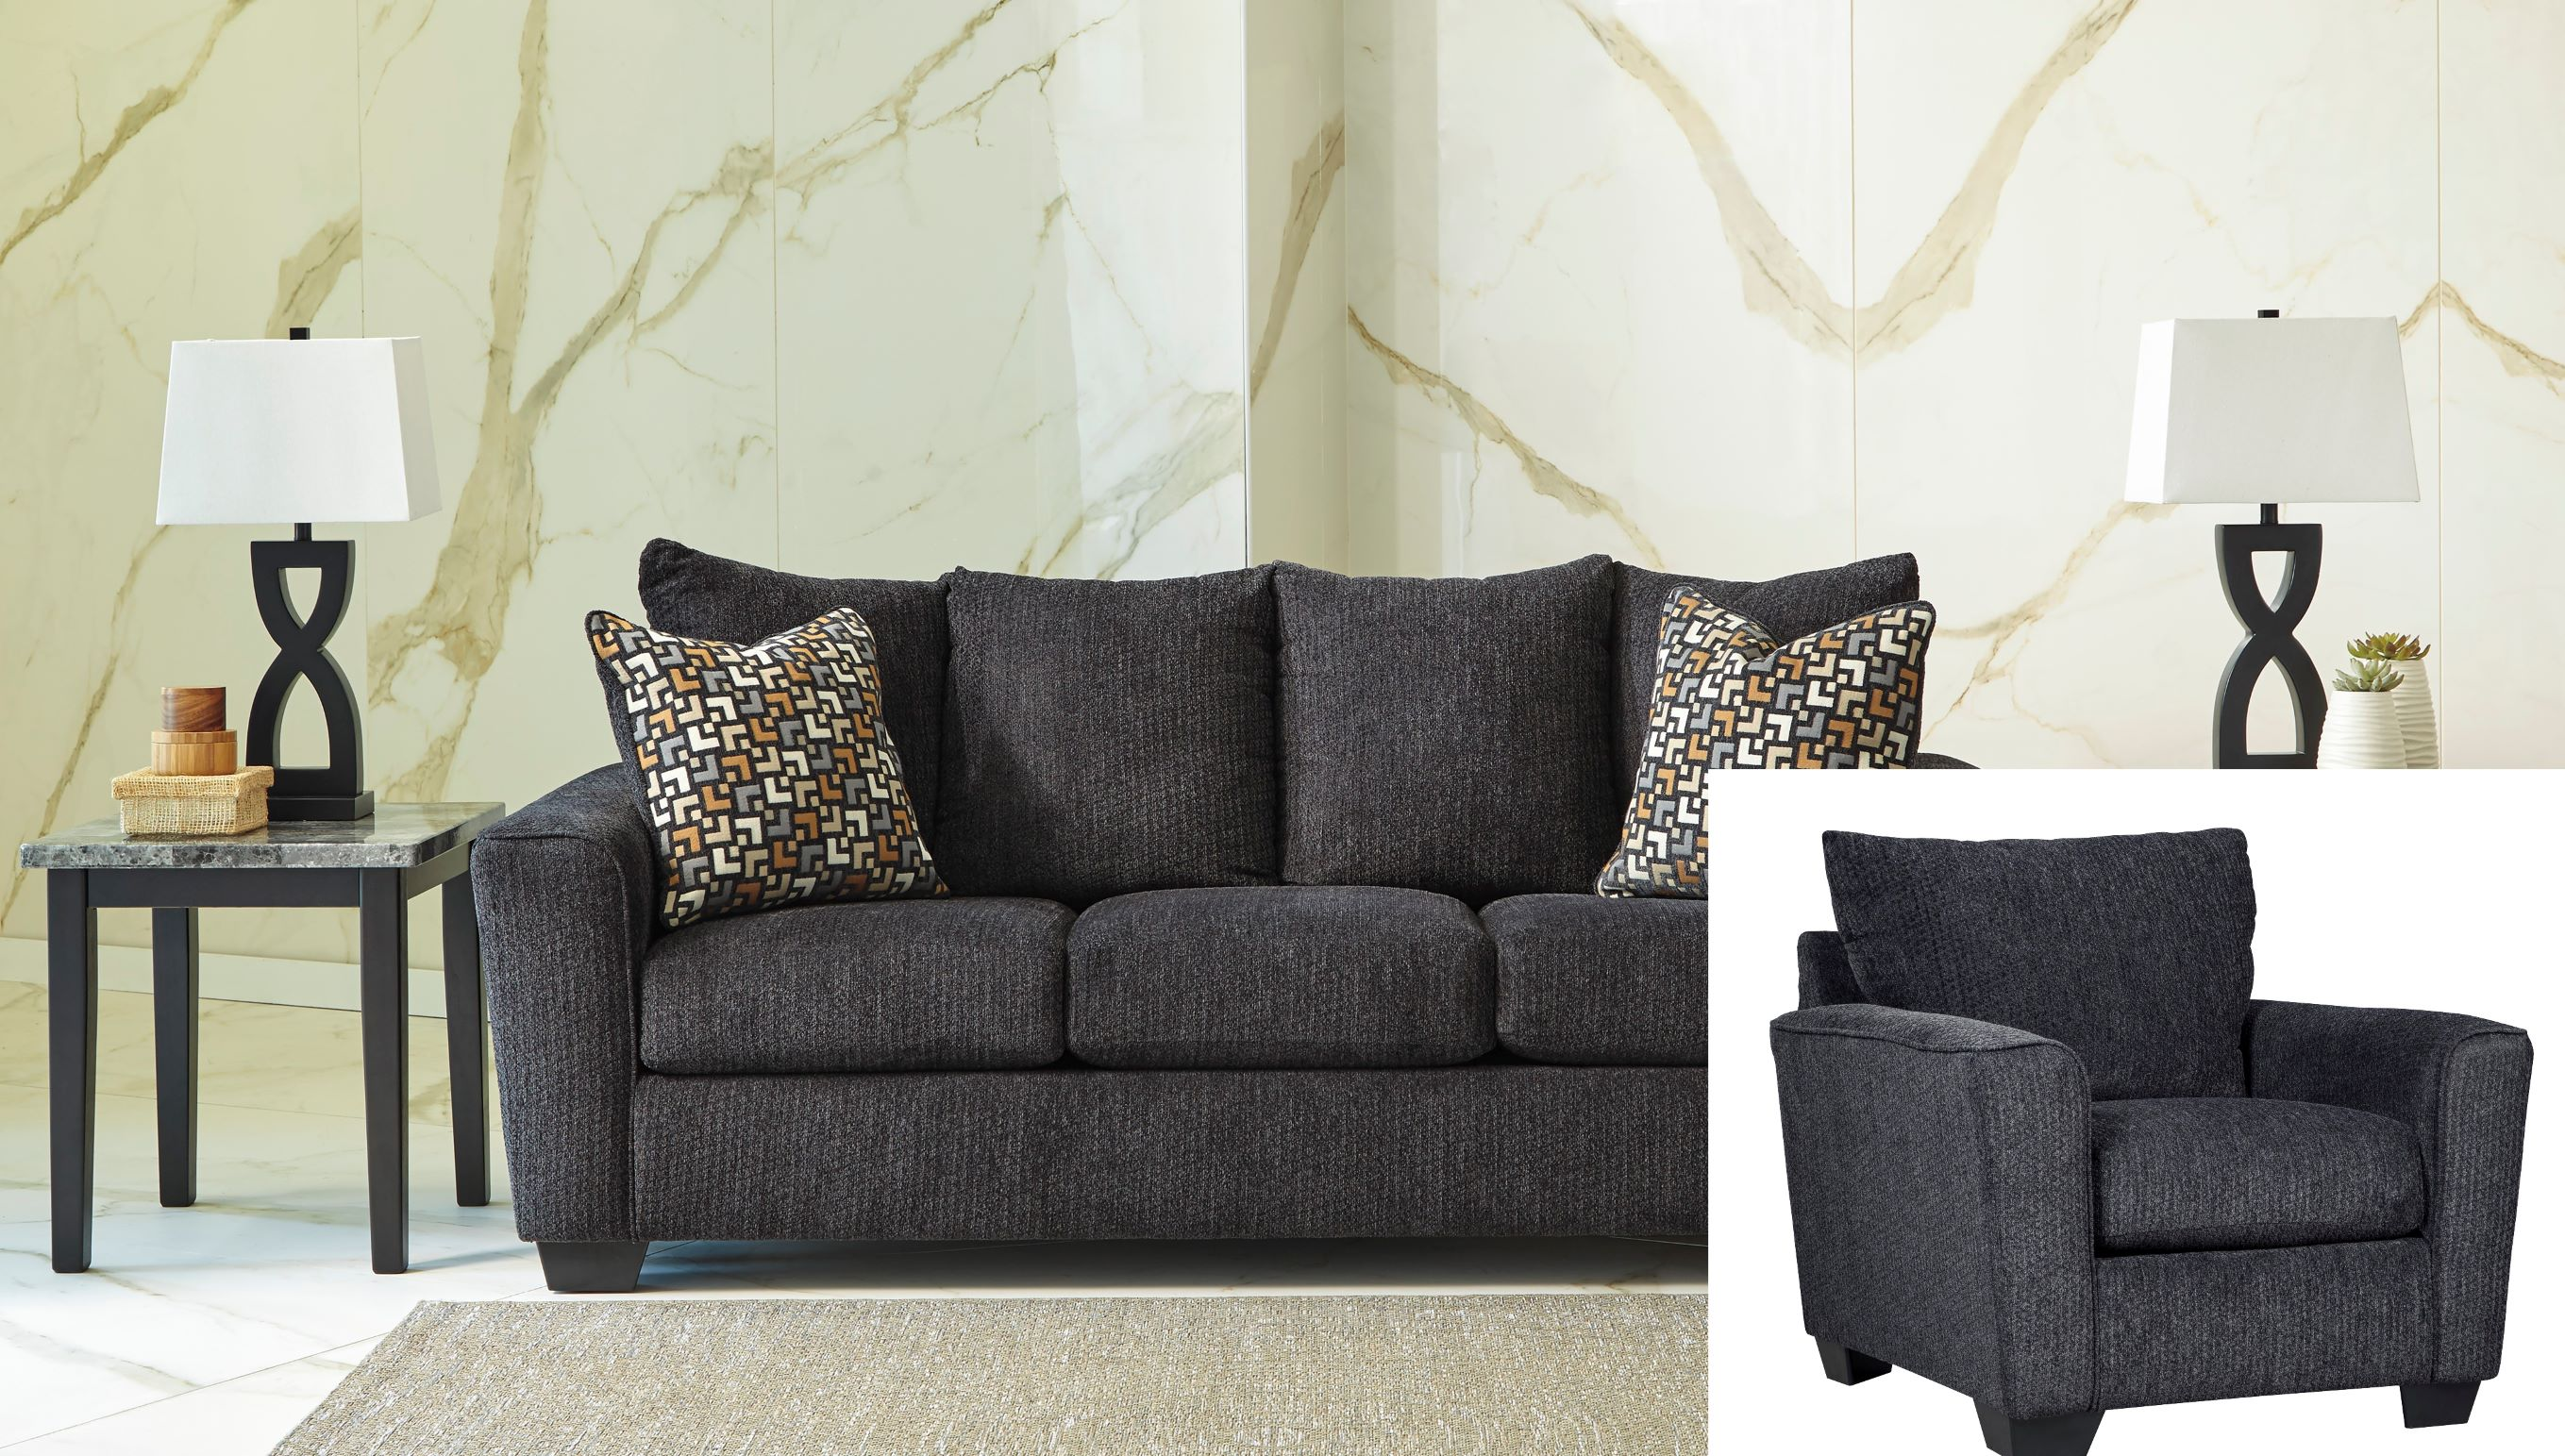 57002 Sofa and Chair